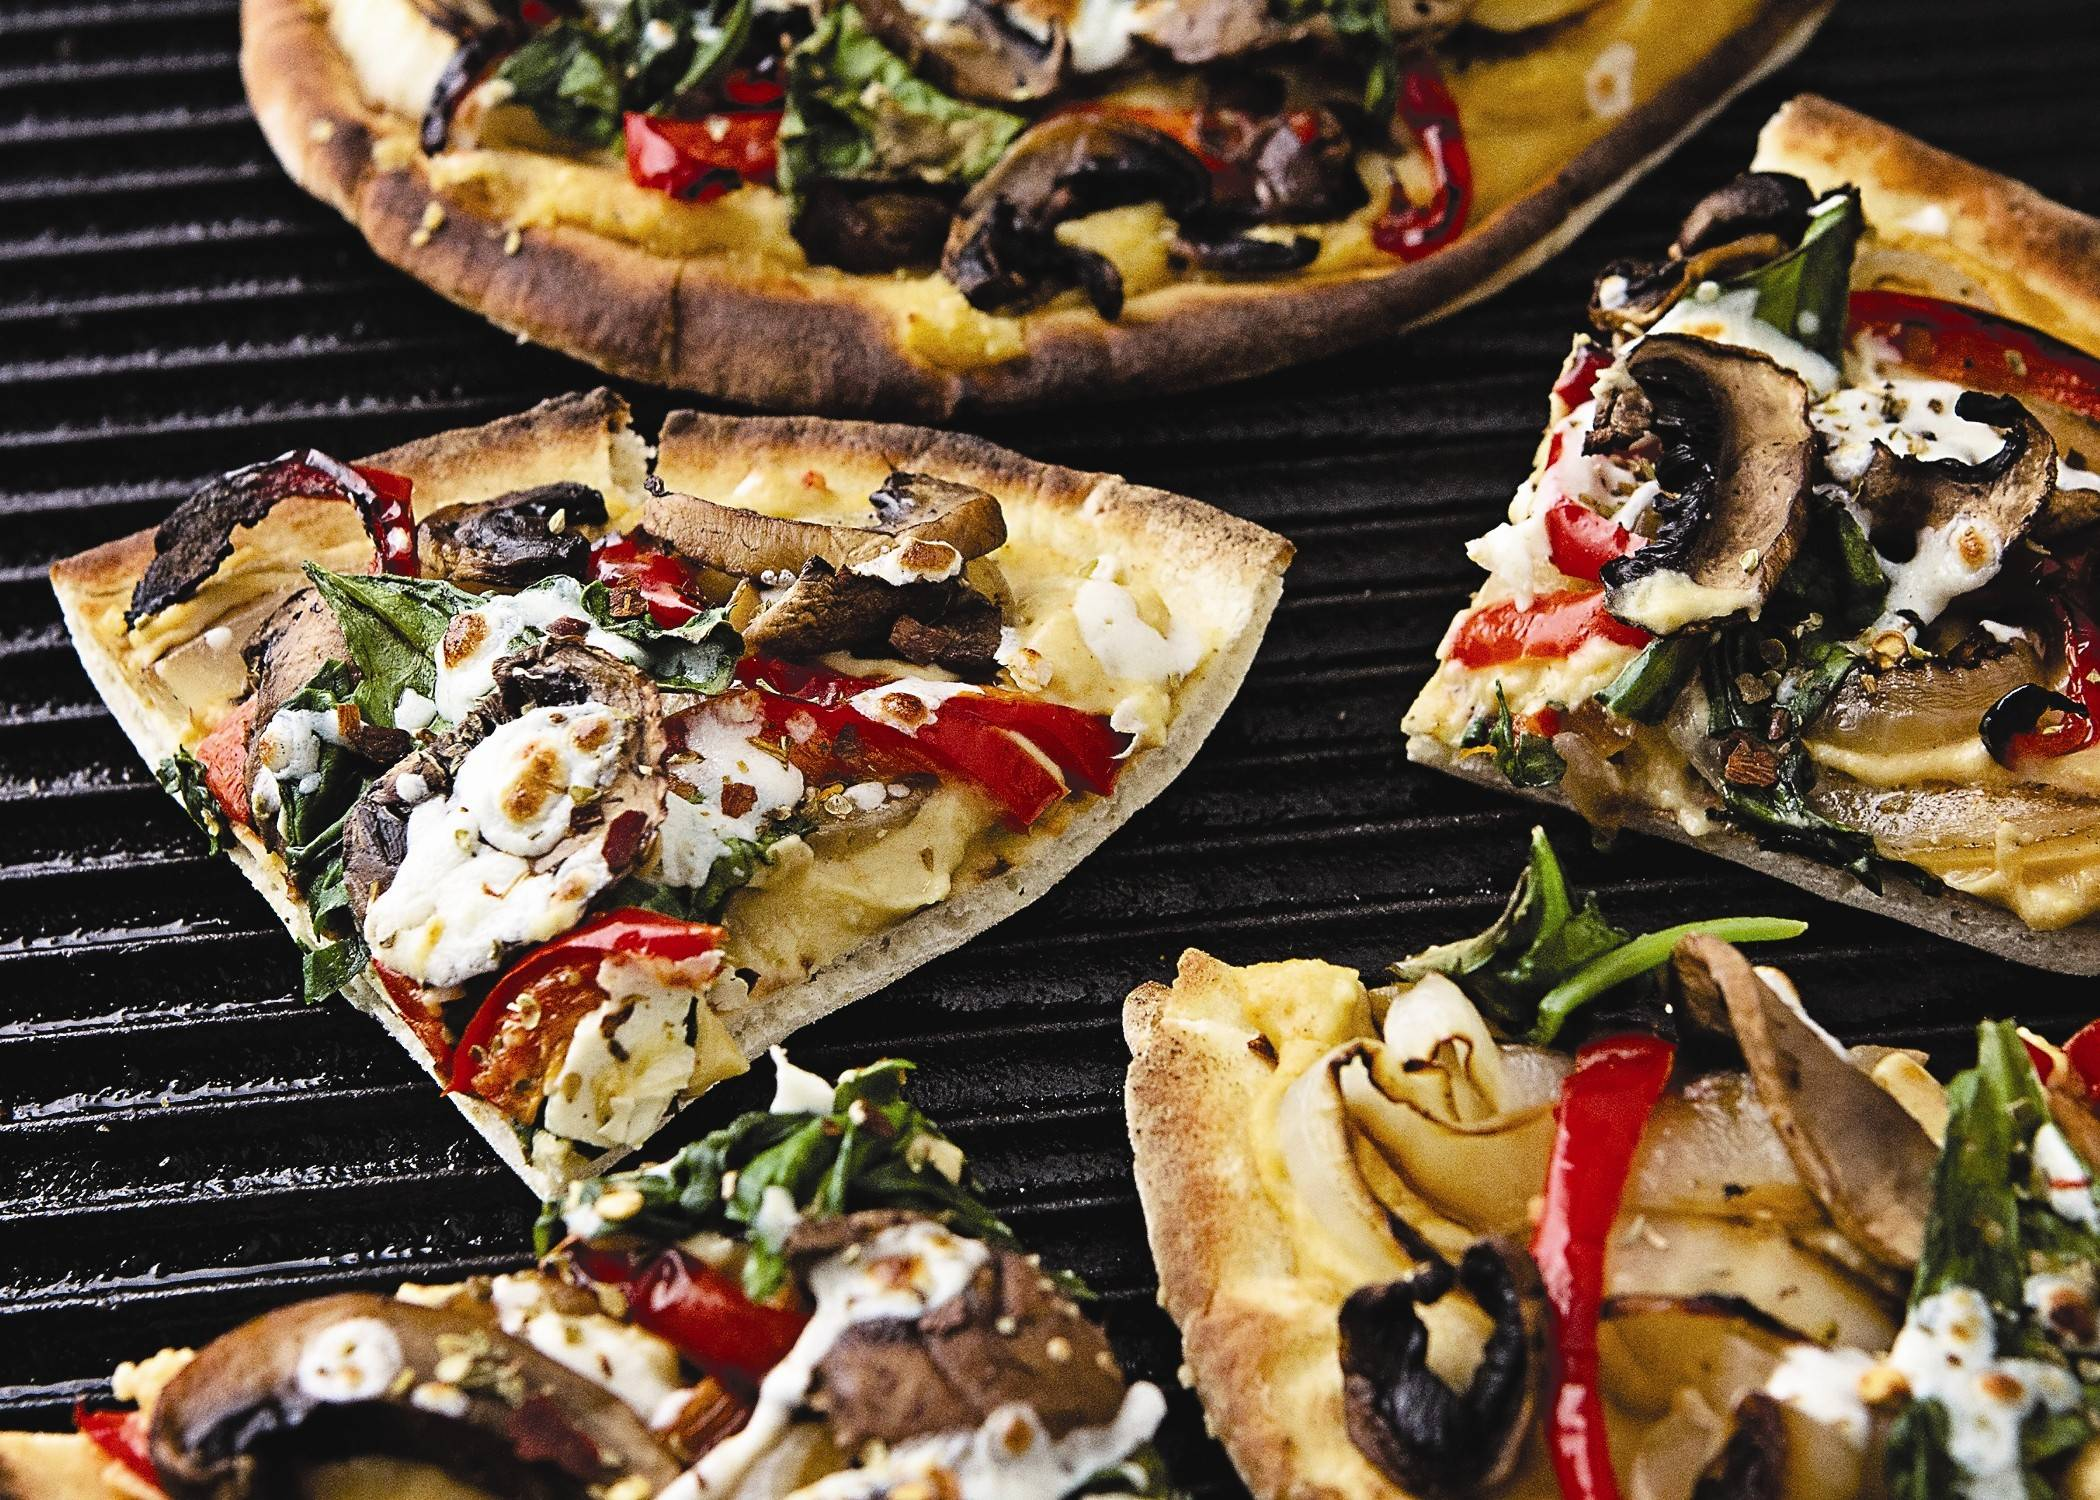 See the recipe for this Grilled Flatbread with Hummus & Mixed Veggies and more pizzas on the grill on Page 4.